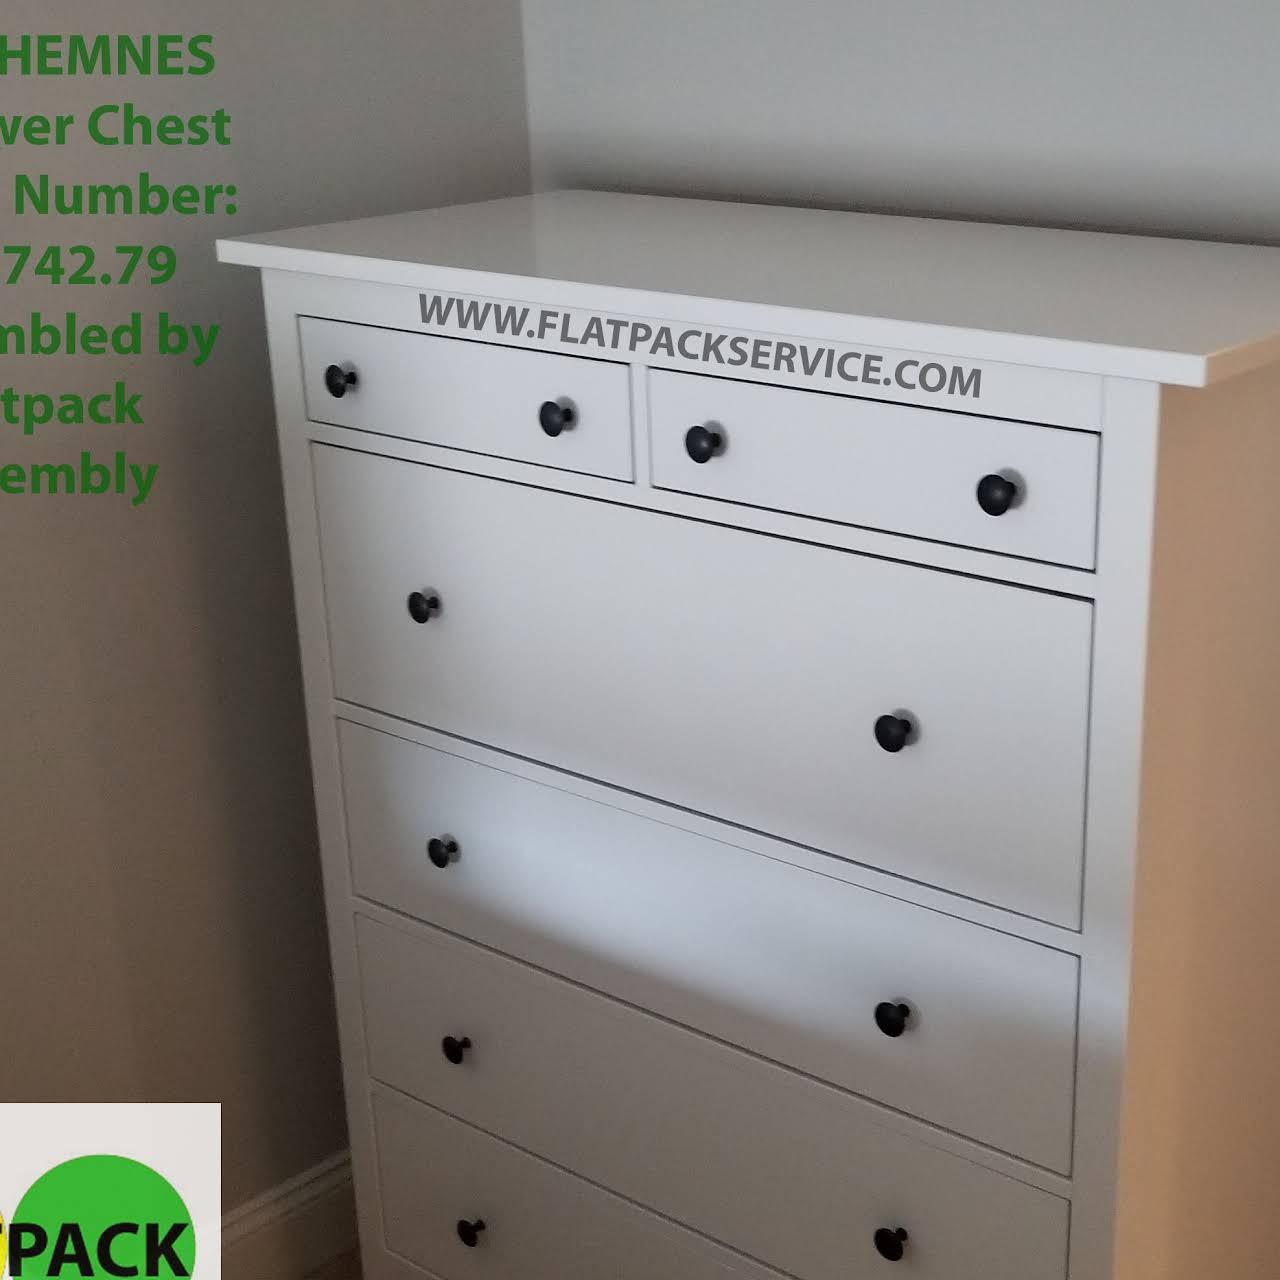 Flatpack Embly Delivery Furniture Contractor